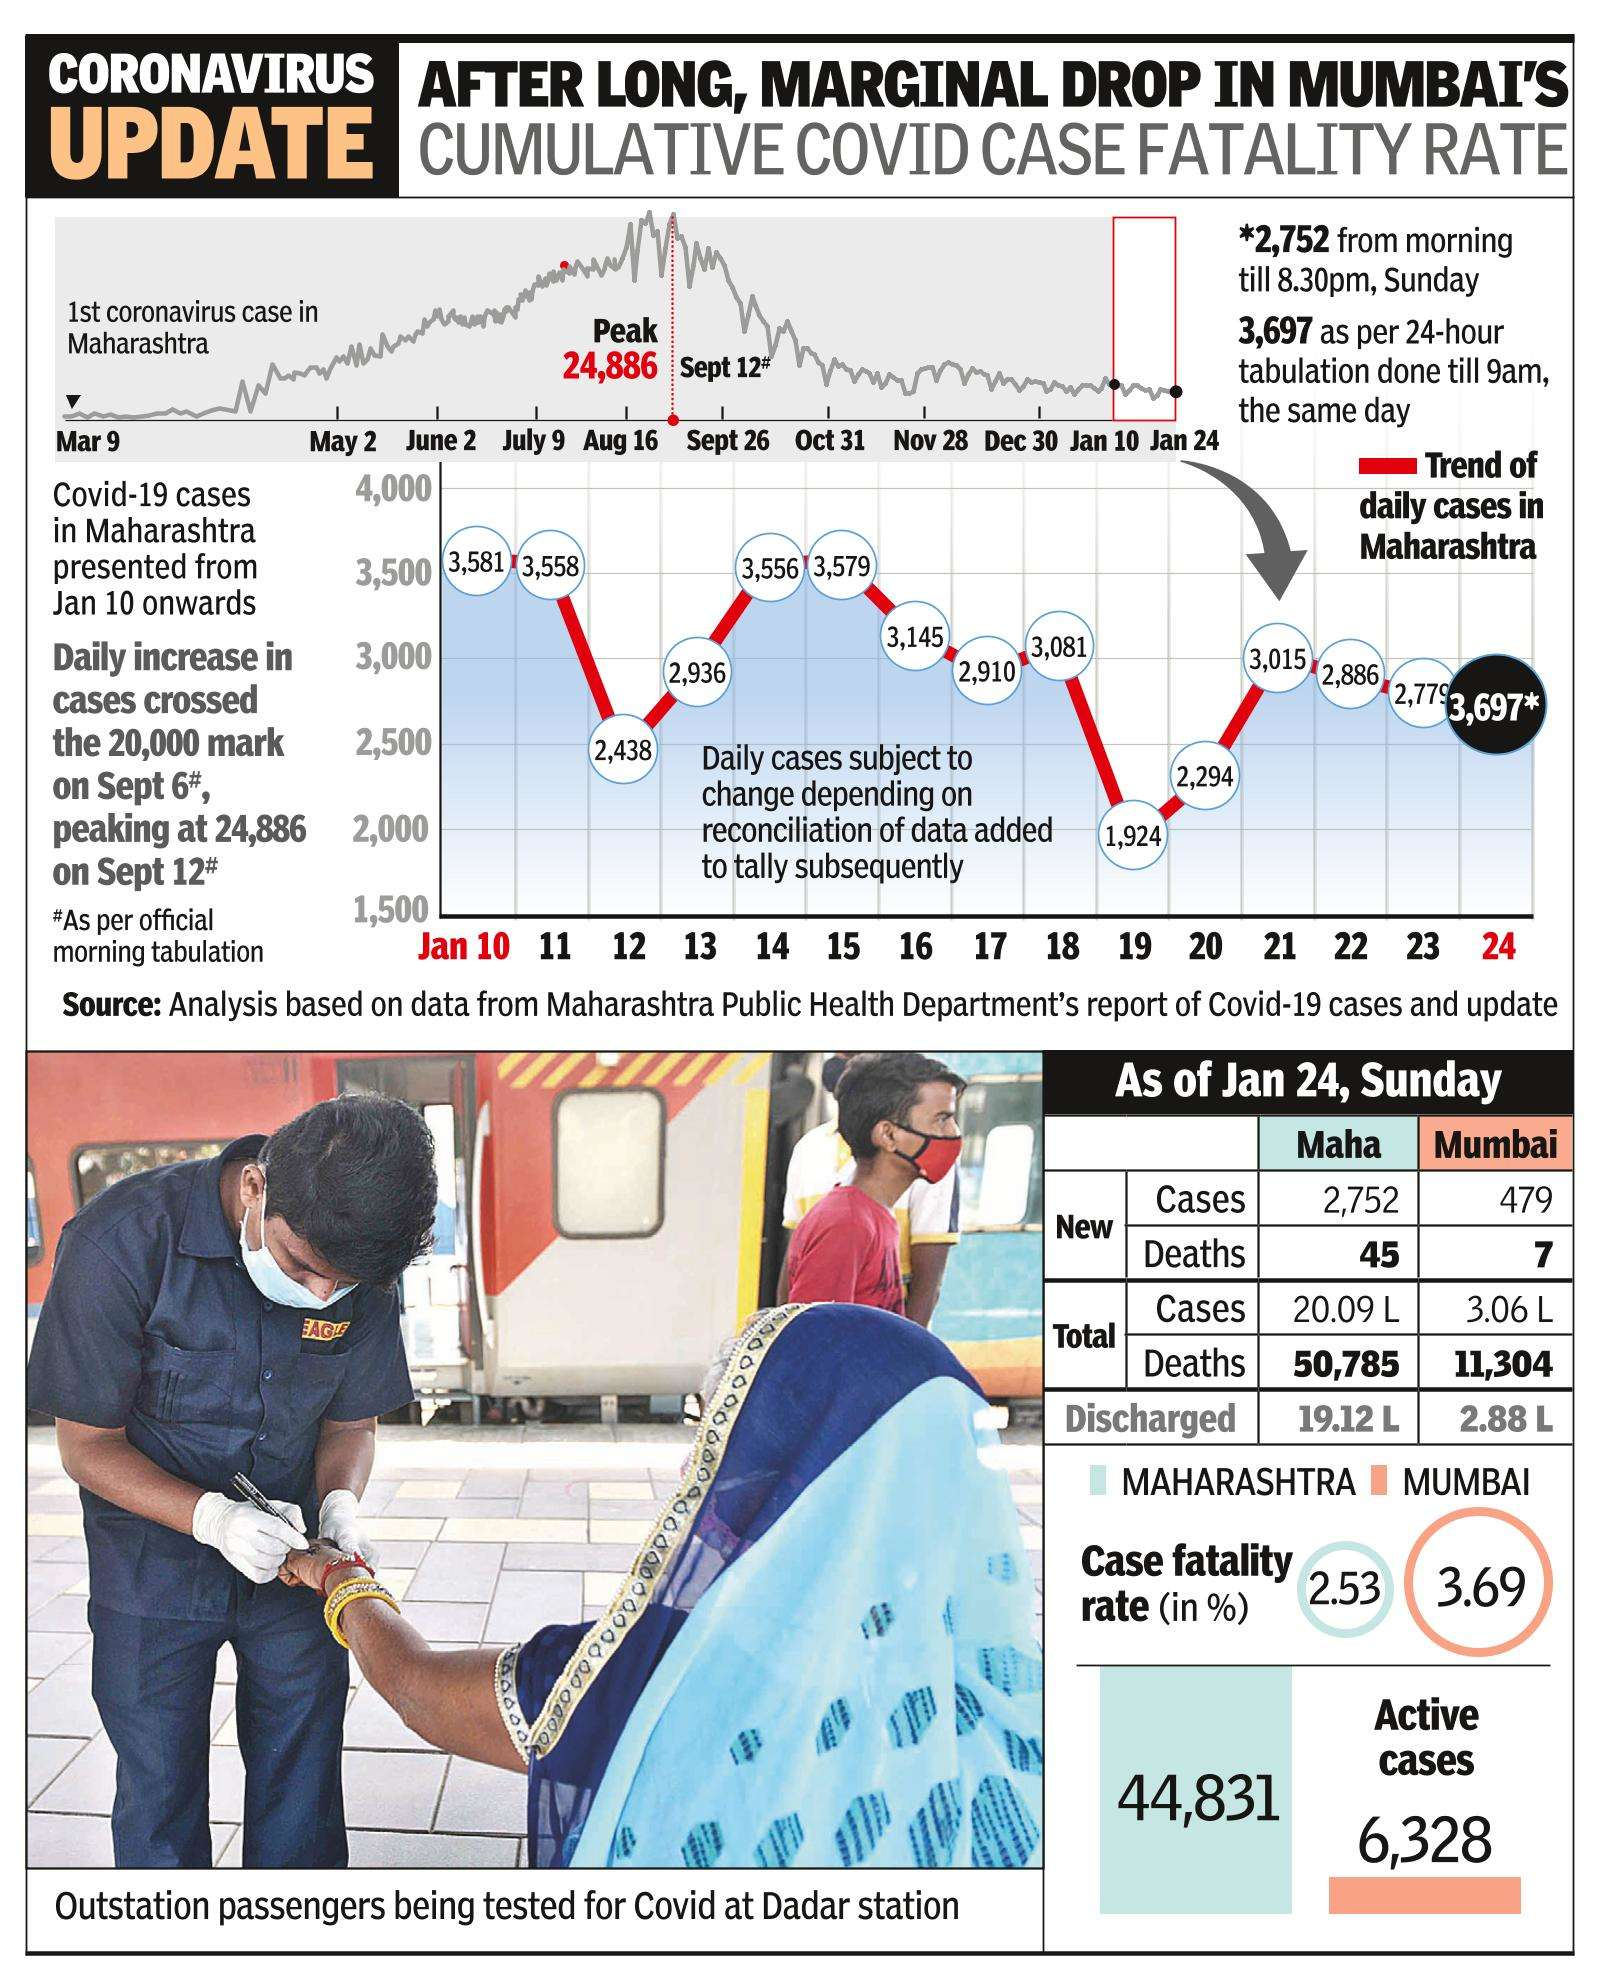 Mumbai: State records under 3,000 Covid cases 4th day in row